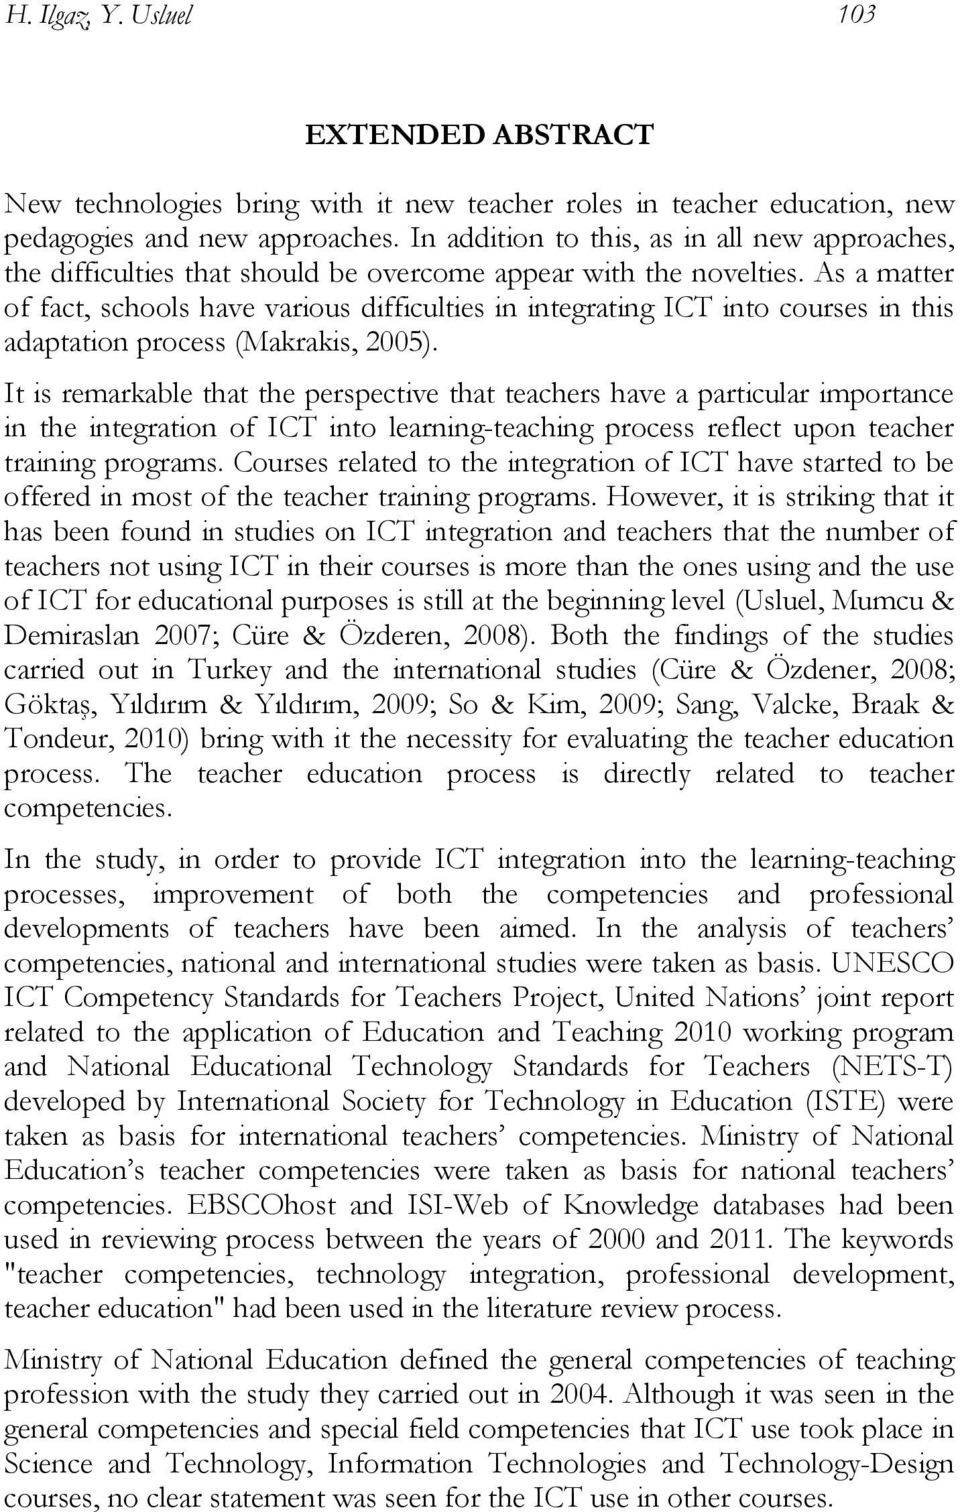 As a matter of fact, schools have various difficulties in integrating ICT into courses in this adaptation process (Makrakis, 2005).